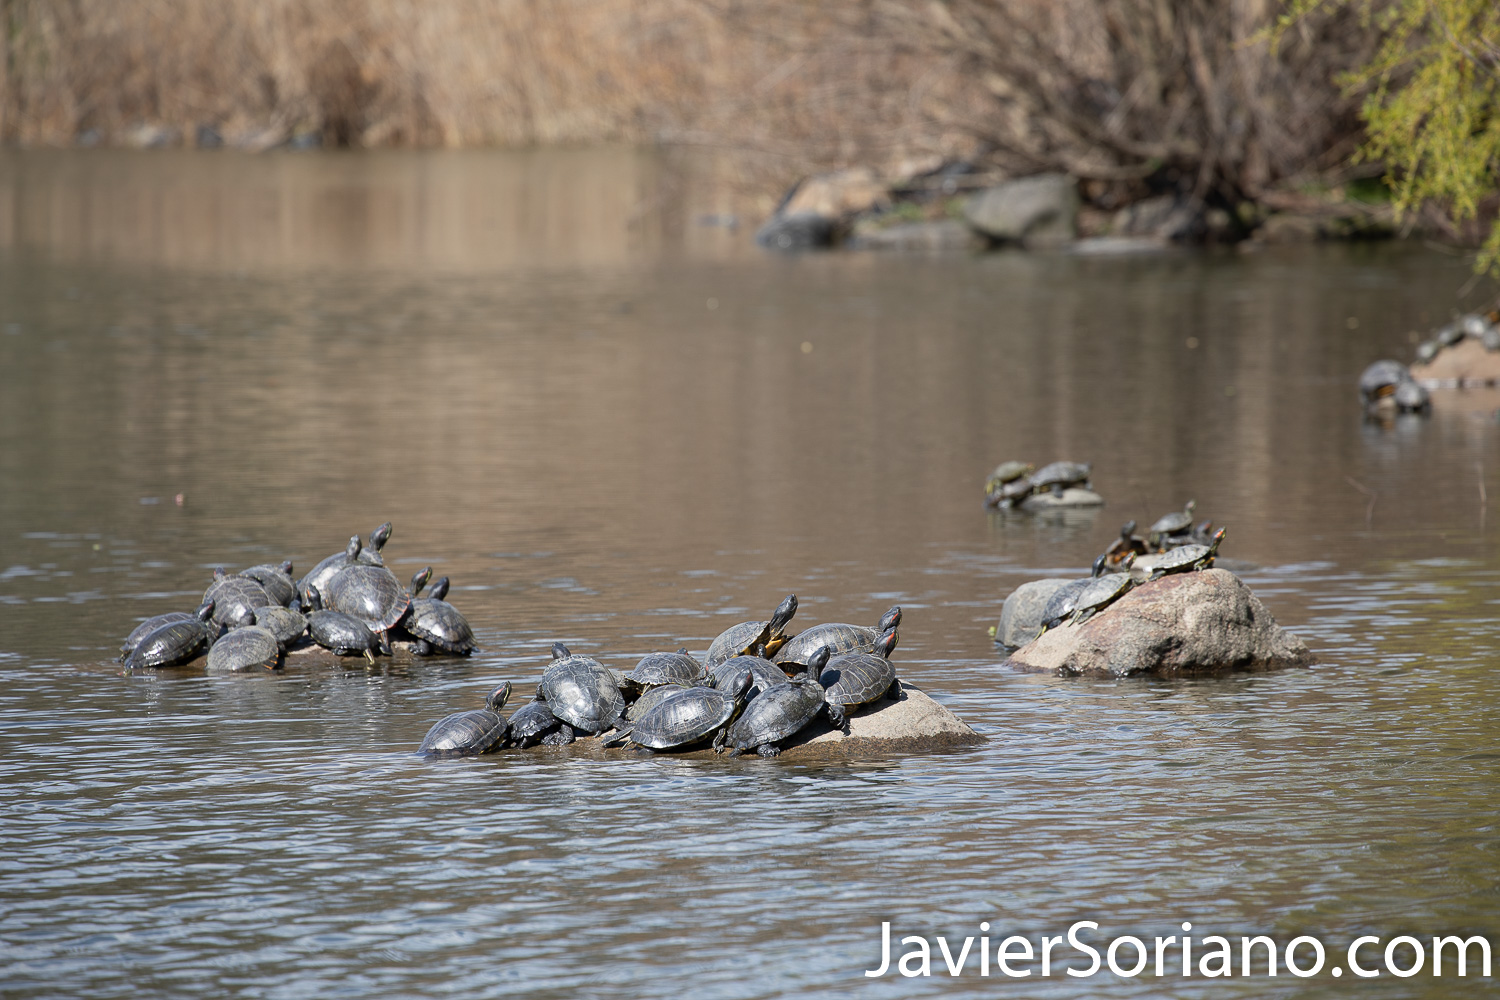 April 1, 2020. New York City - Turtles taking the sun. Spring during the coronavirus pandemic in New York City. Photo by Javier Soriano/www.JavierSoriano.com